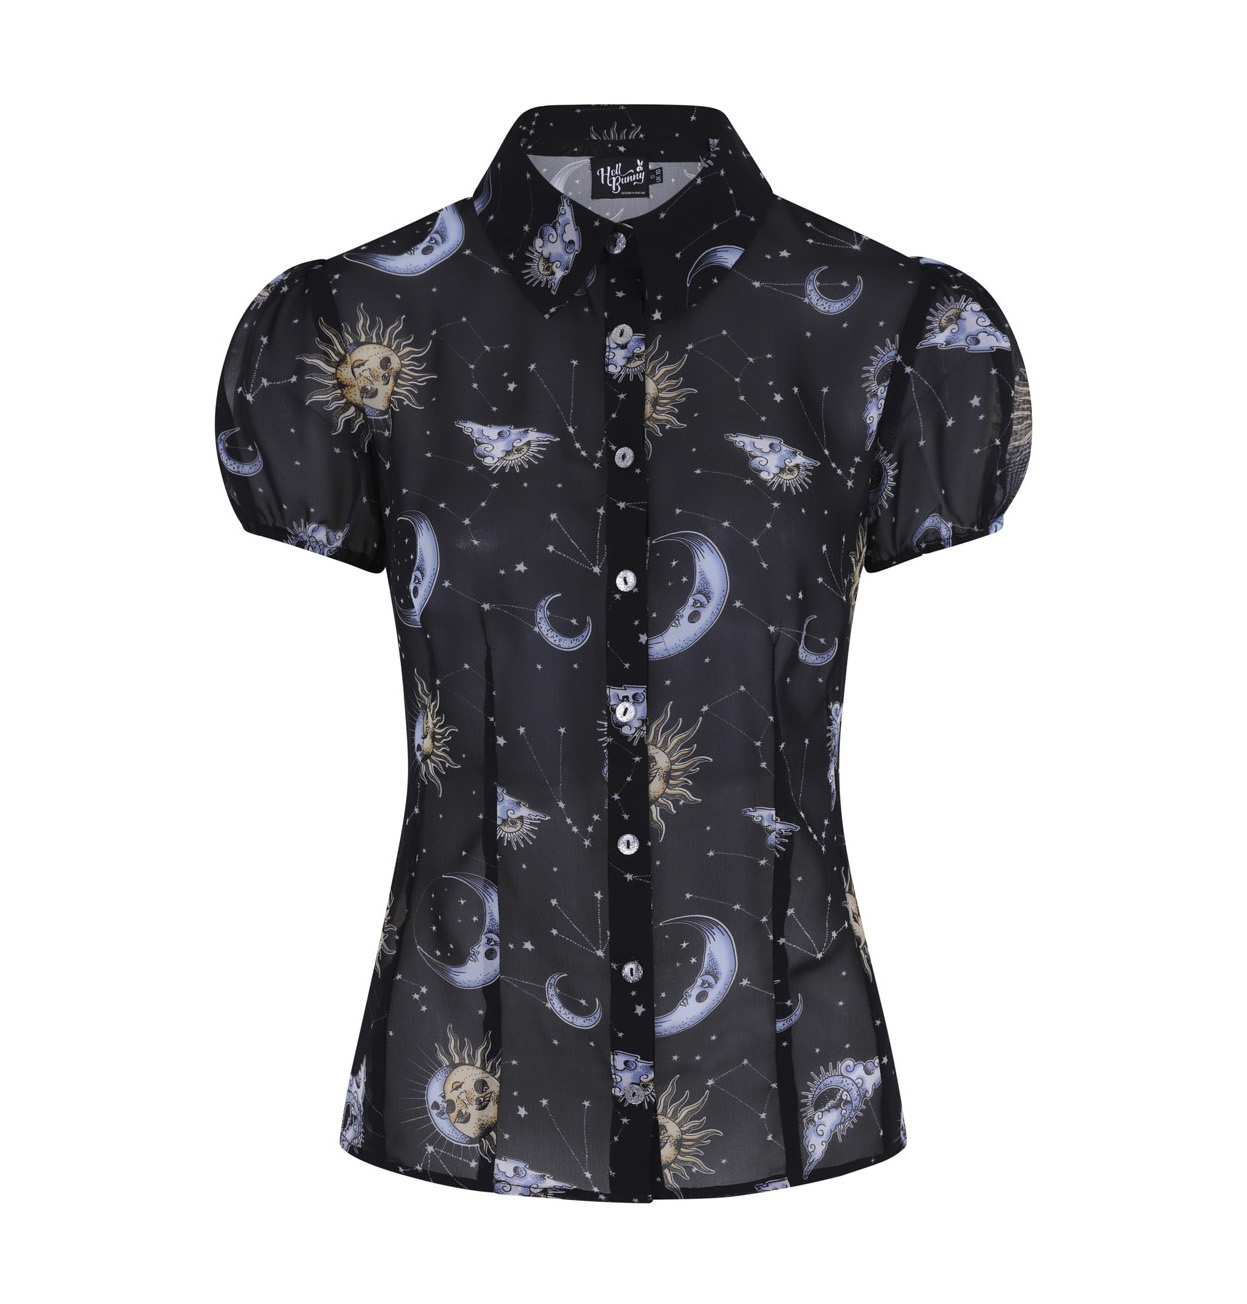 Hell-Bunny-50s-Shirt-Top-Gothic-Black-Sun-Moon-Stars-SOLARIS-Blouse-All-Sizes thumbnail 17